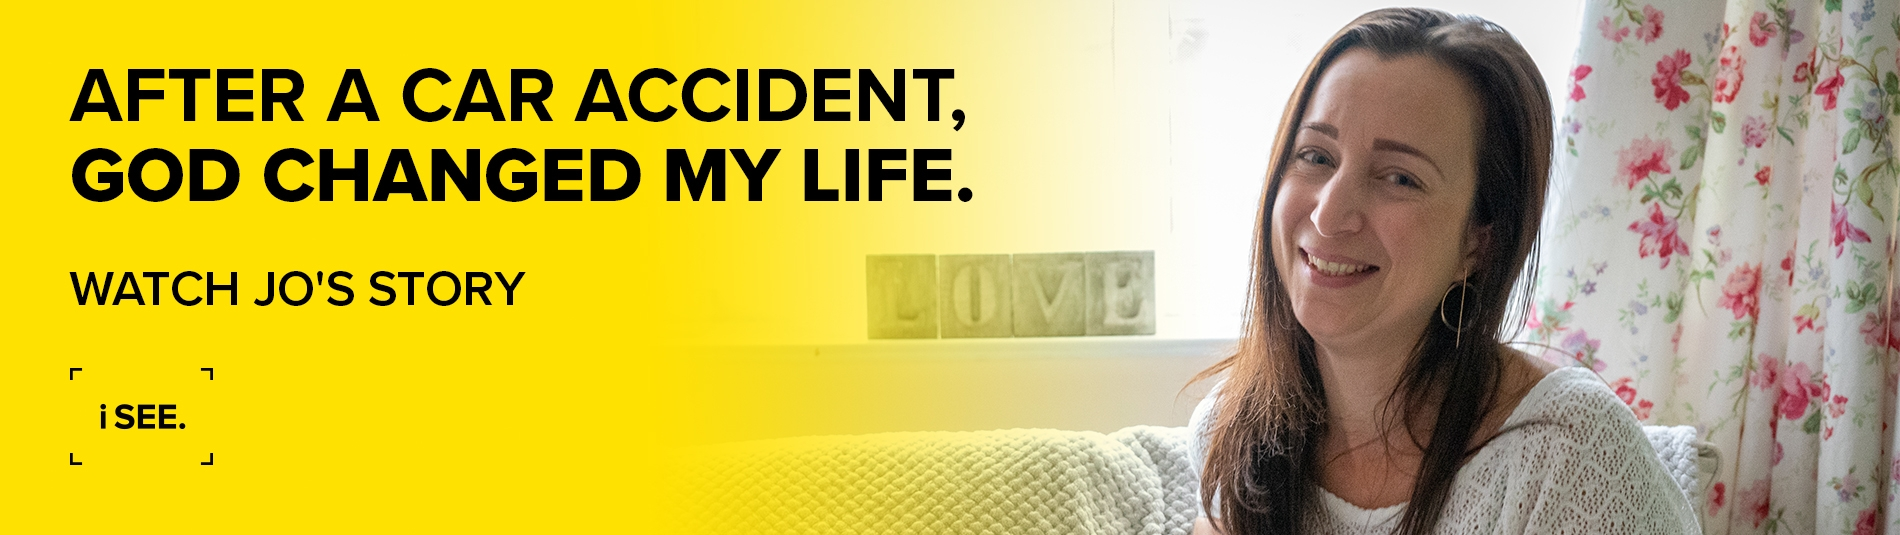 'After a car accident,  God changed my life.' Watch Jo's Story